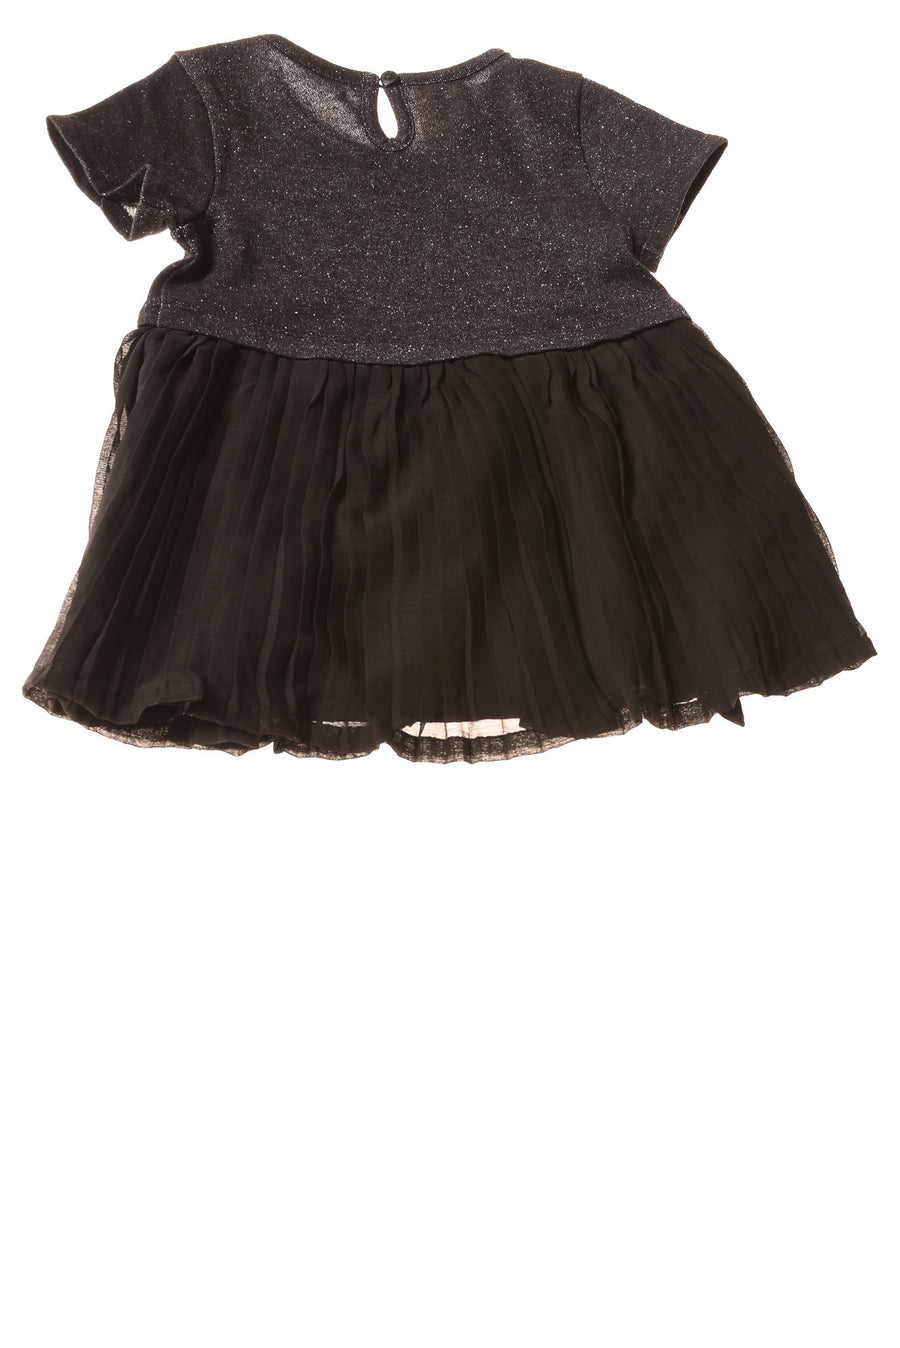 Toddler Girl's Top By Wonder Kids